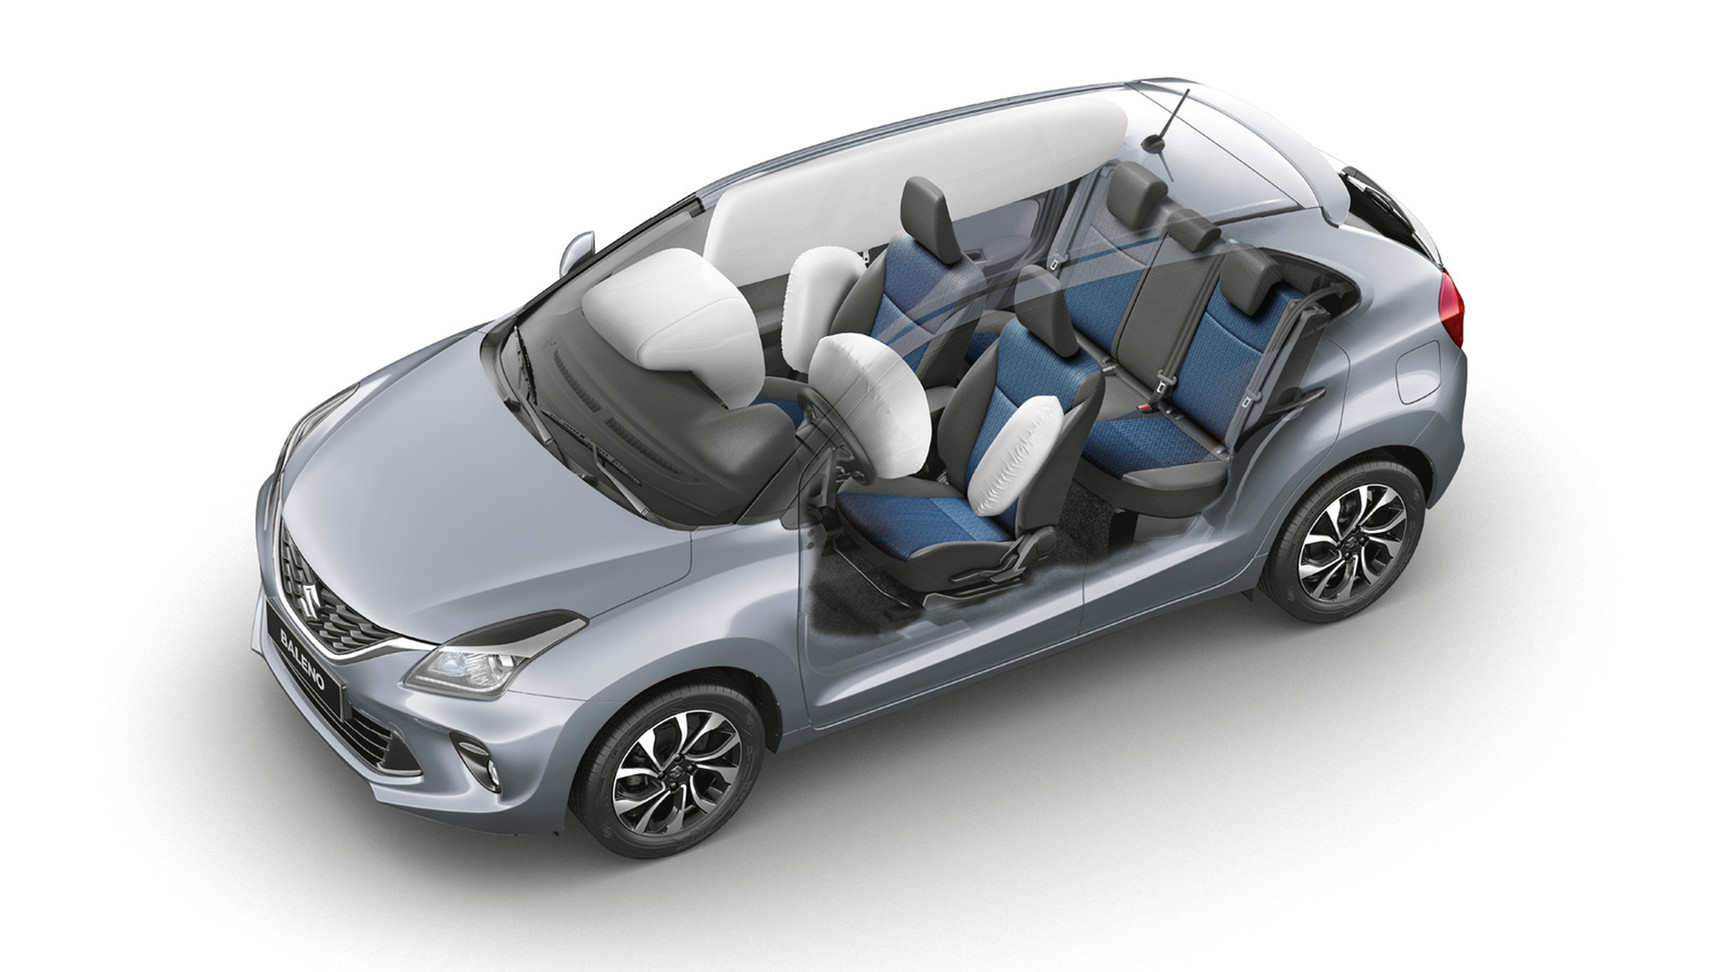 Occupant-protective SRS airbag system